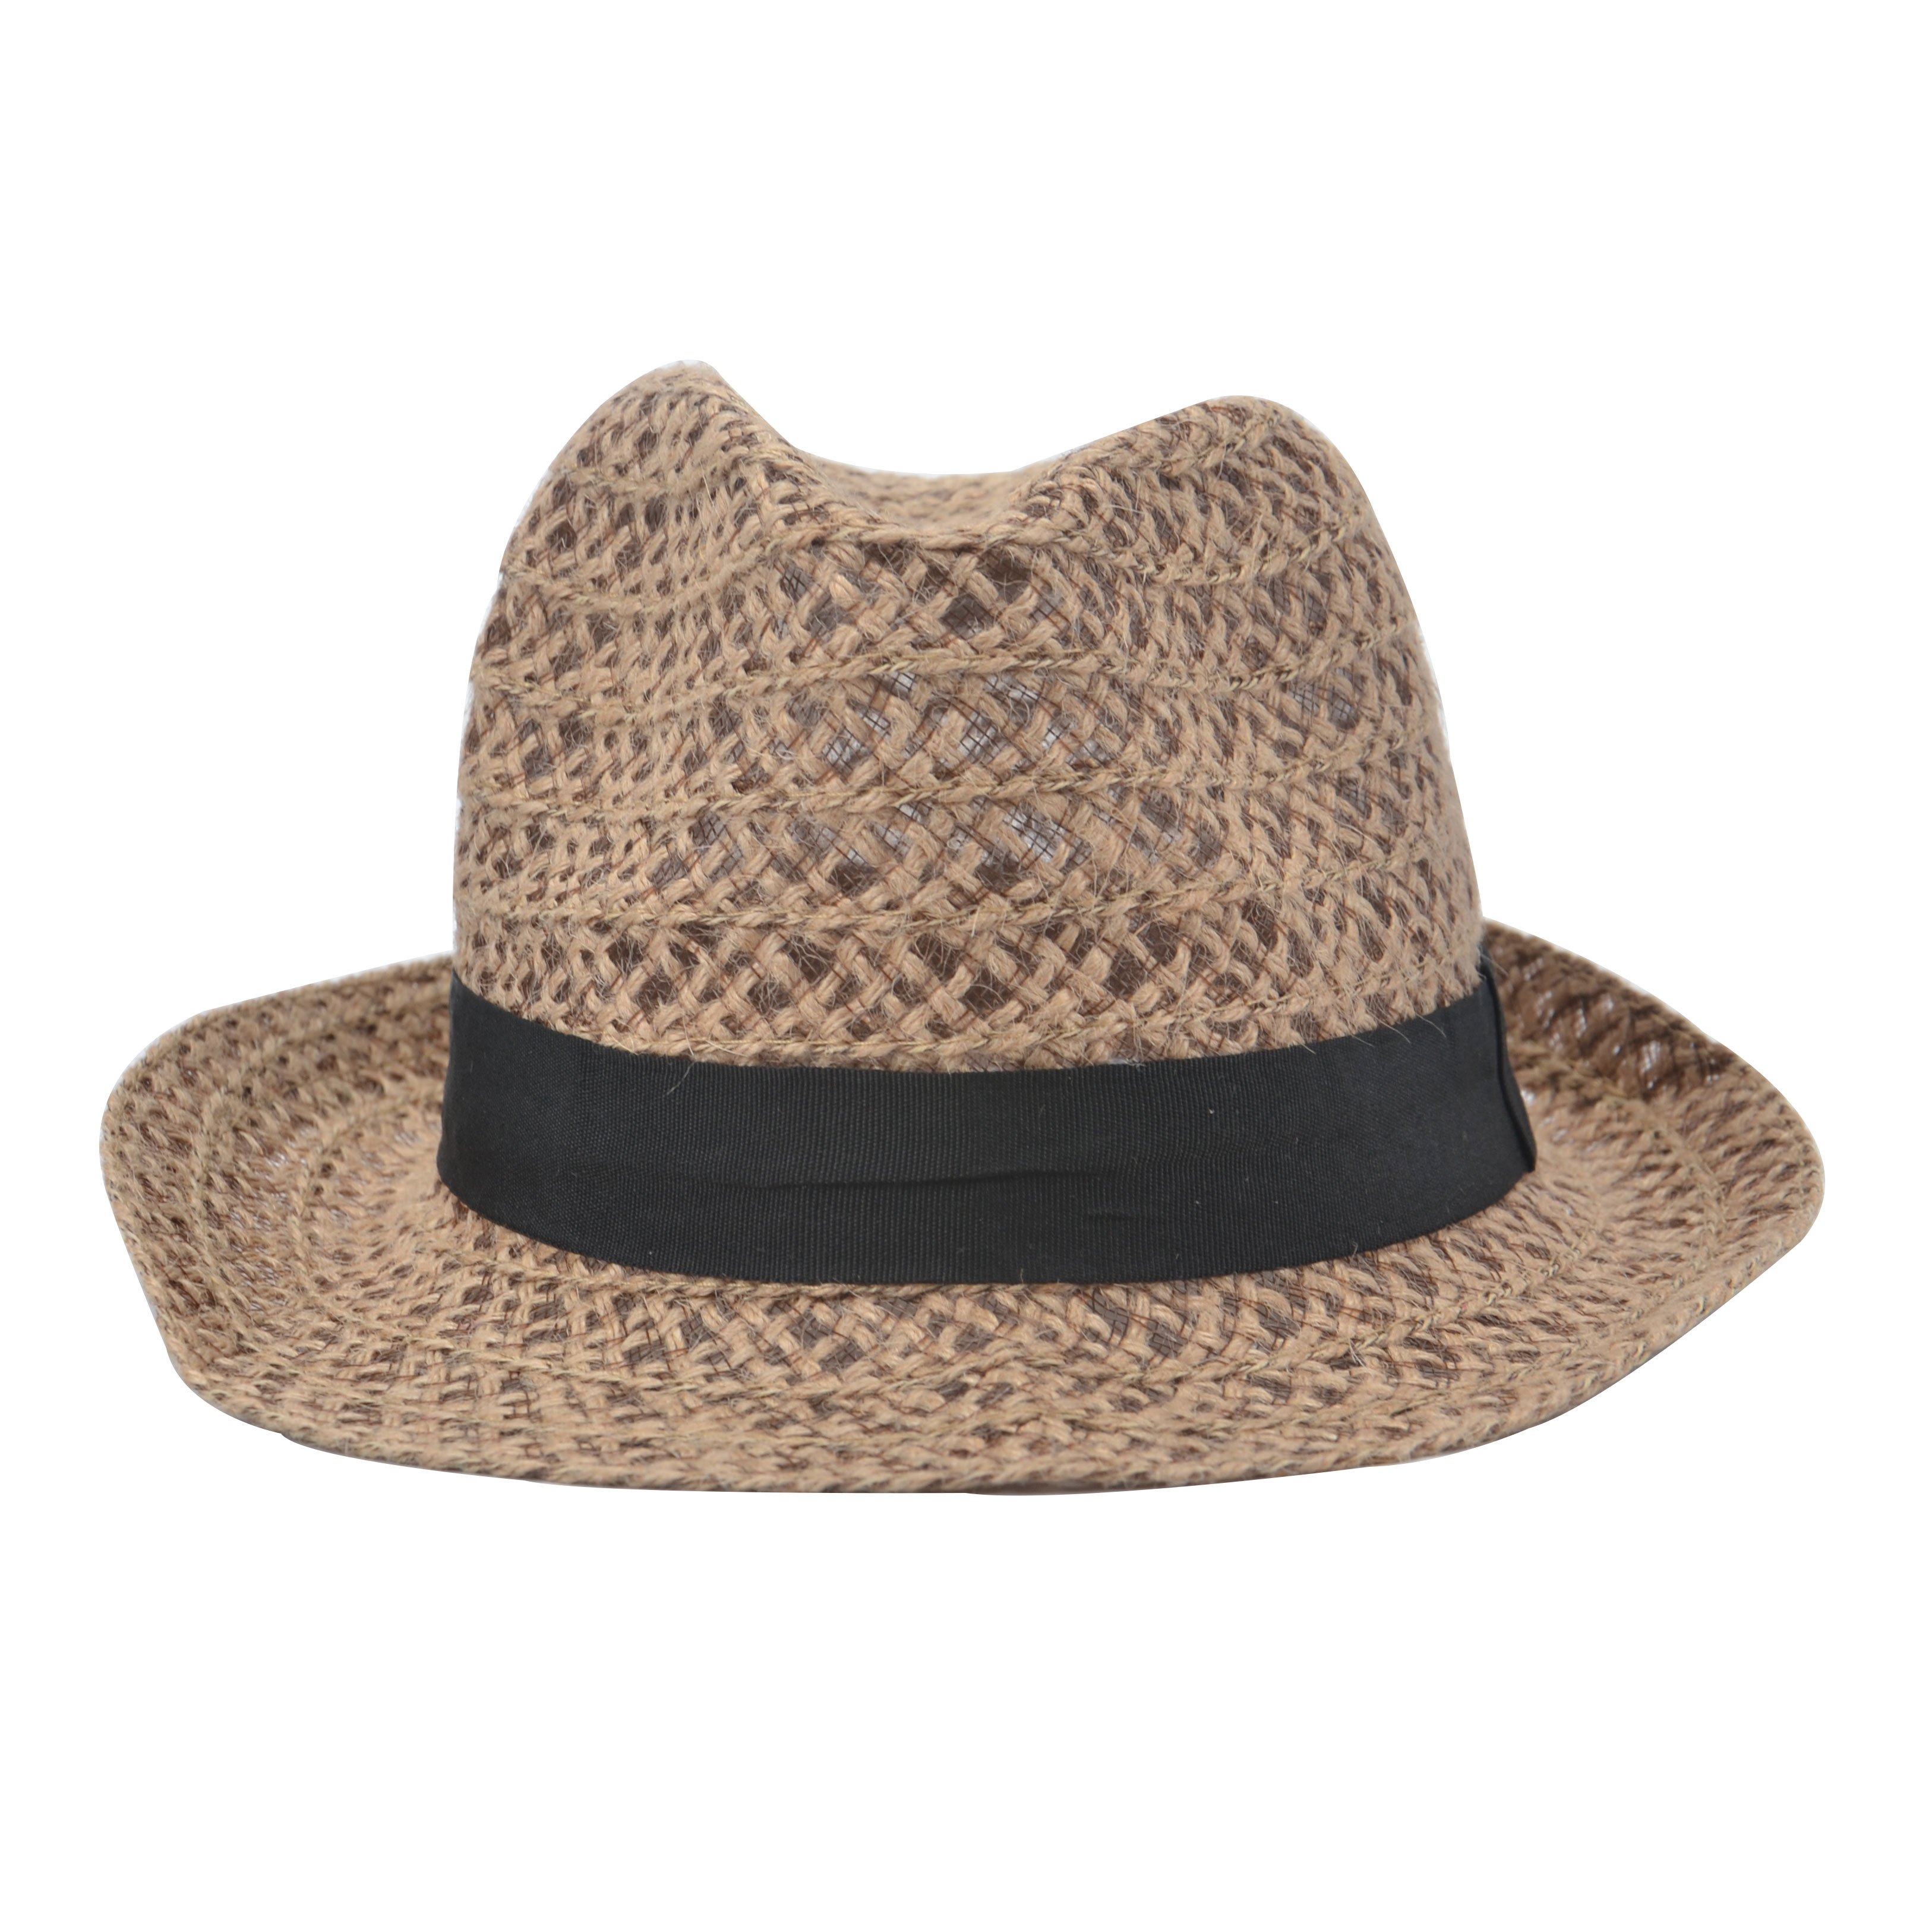 Unisex Men Beige Paper Straw Black Ribbon Summer Fedora Hats Women - Buy Fedora  Hats Women a142e18c84a